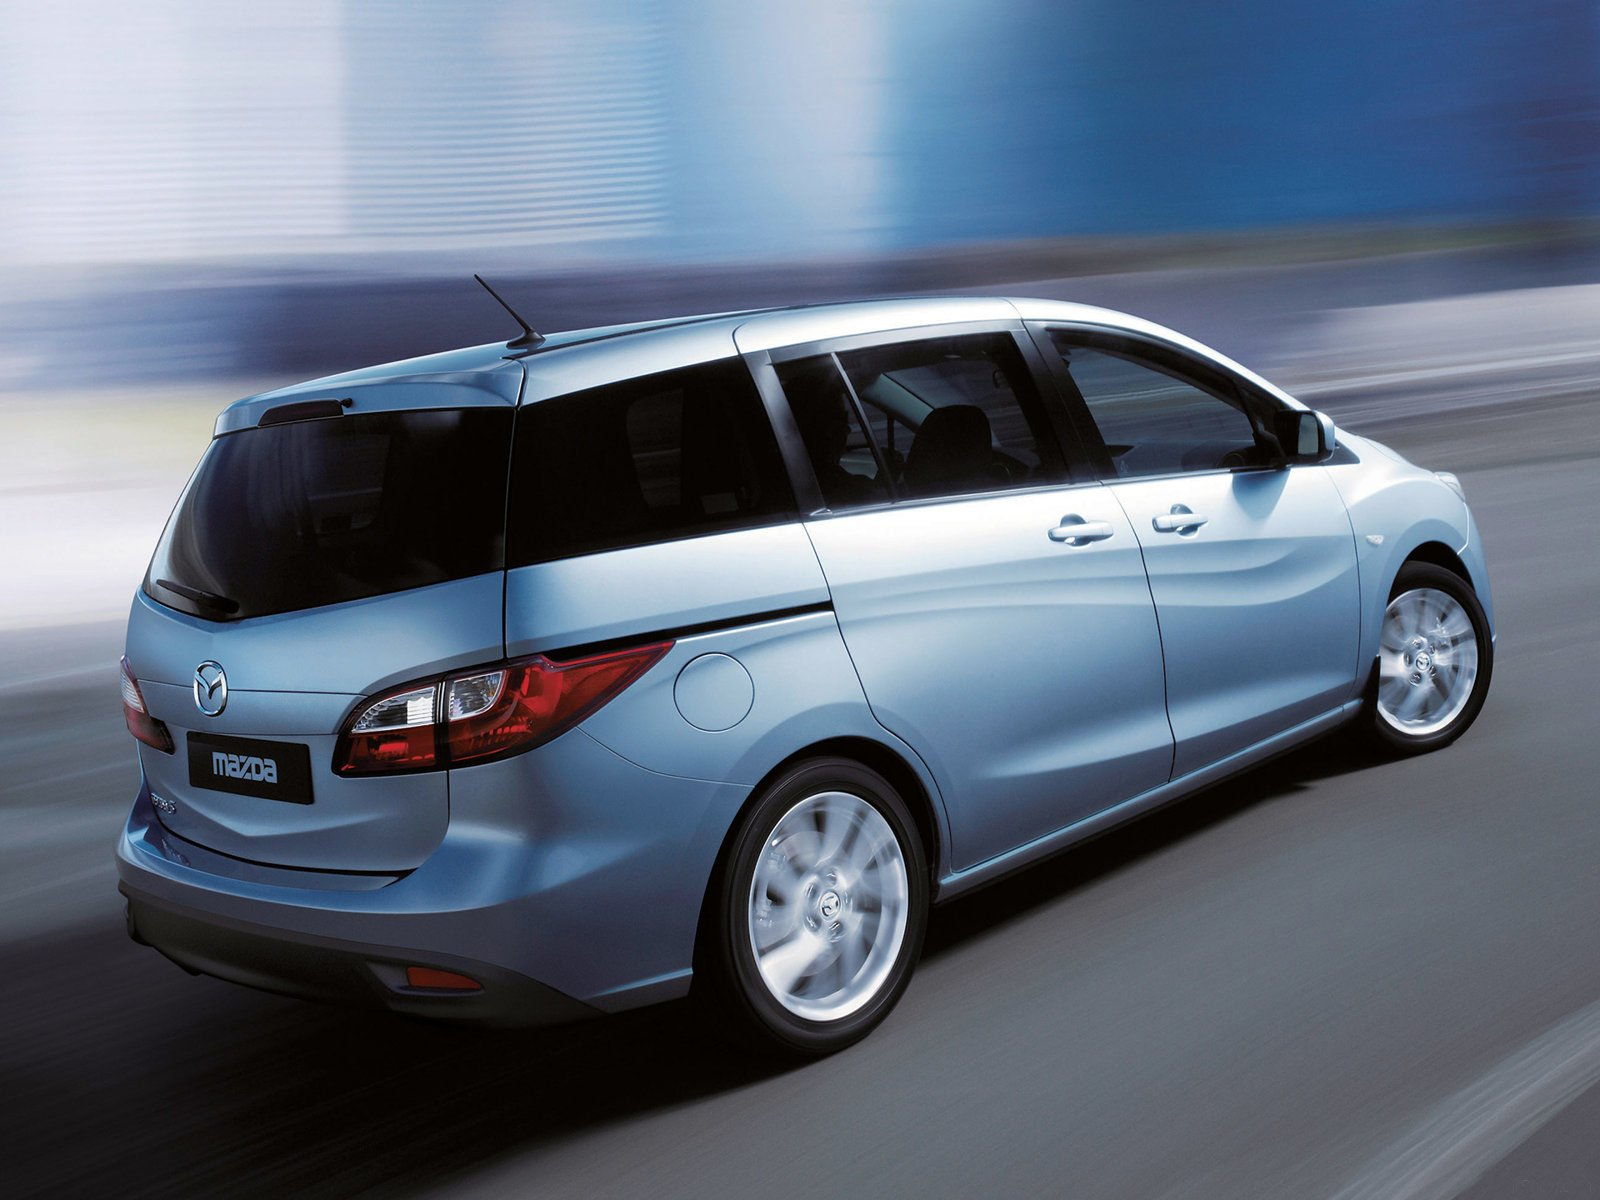 Latest 2011 Mazda 5 Japanese Car Pictures Accident Lawyers Info Free Download